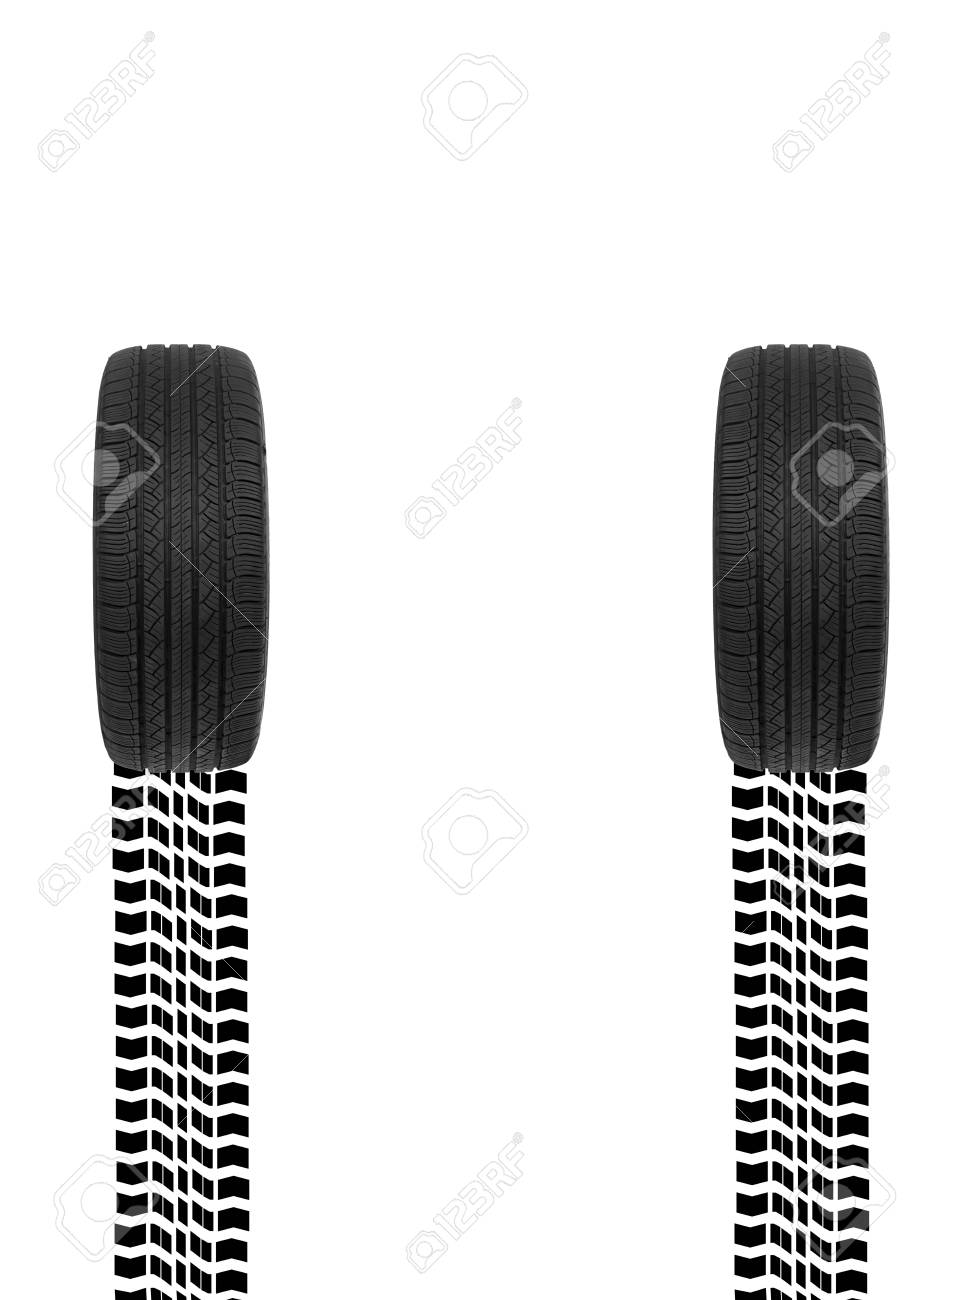 A black rubber tyre isolated against a white background Stock Photo - 22384137